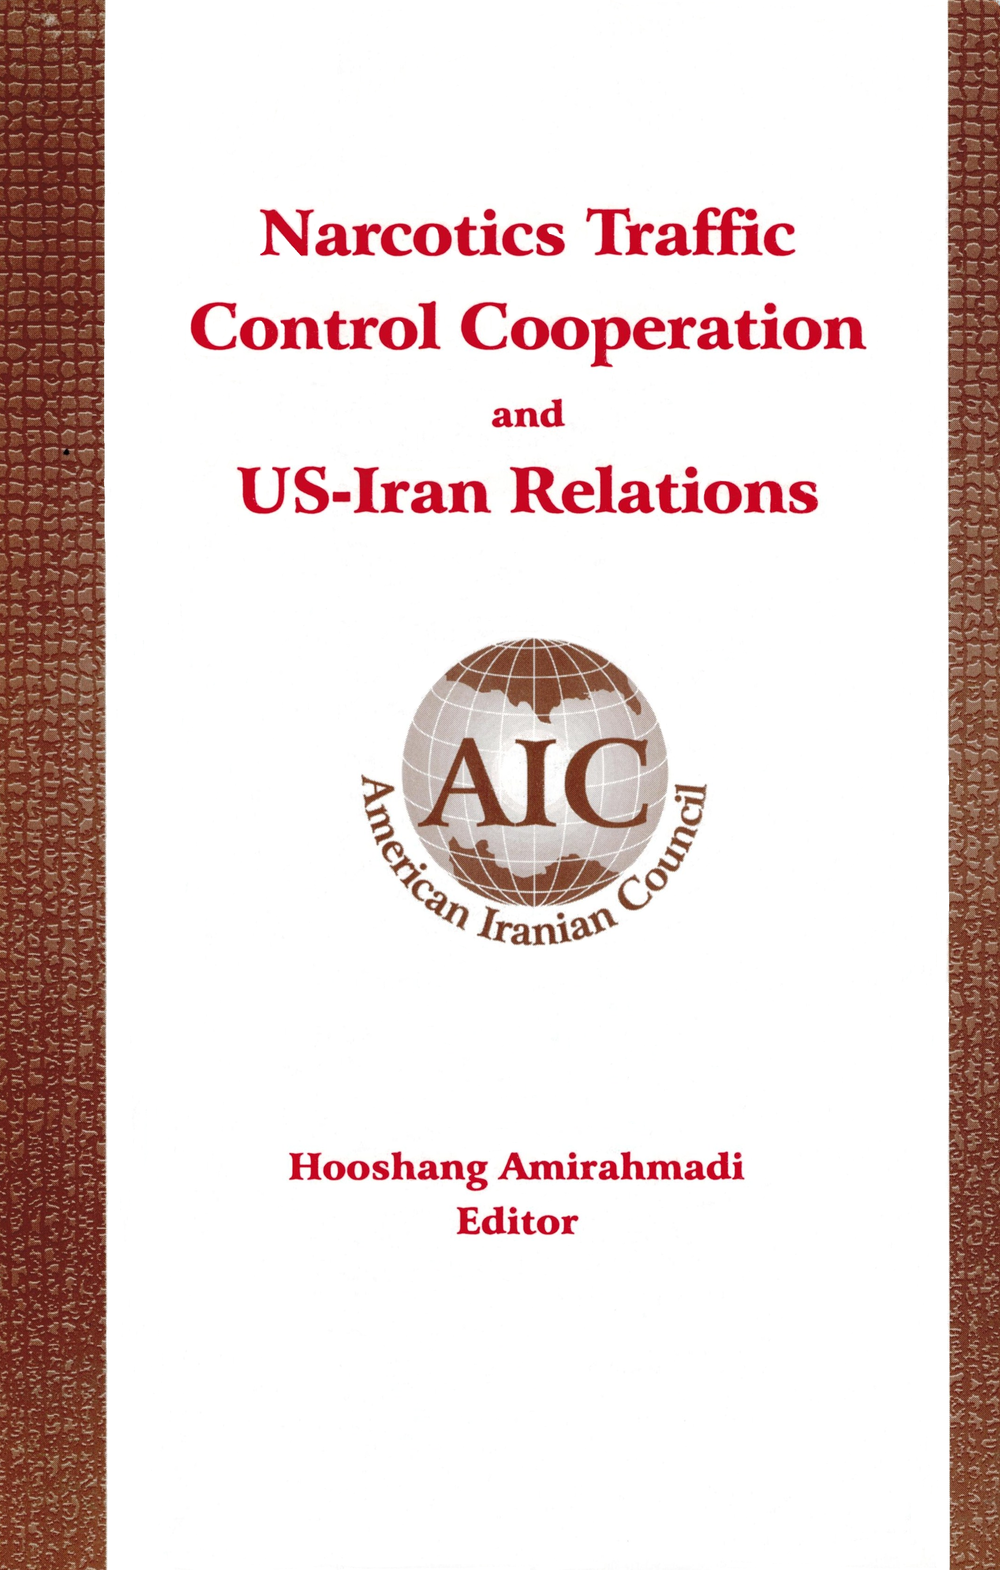 Narcotics Traffic Control Cooperation and US-Iran Relations